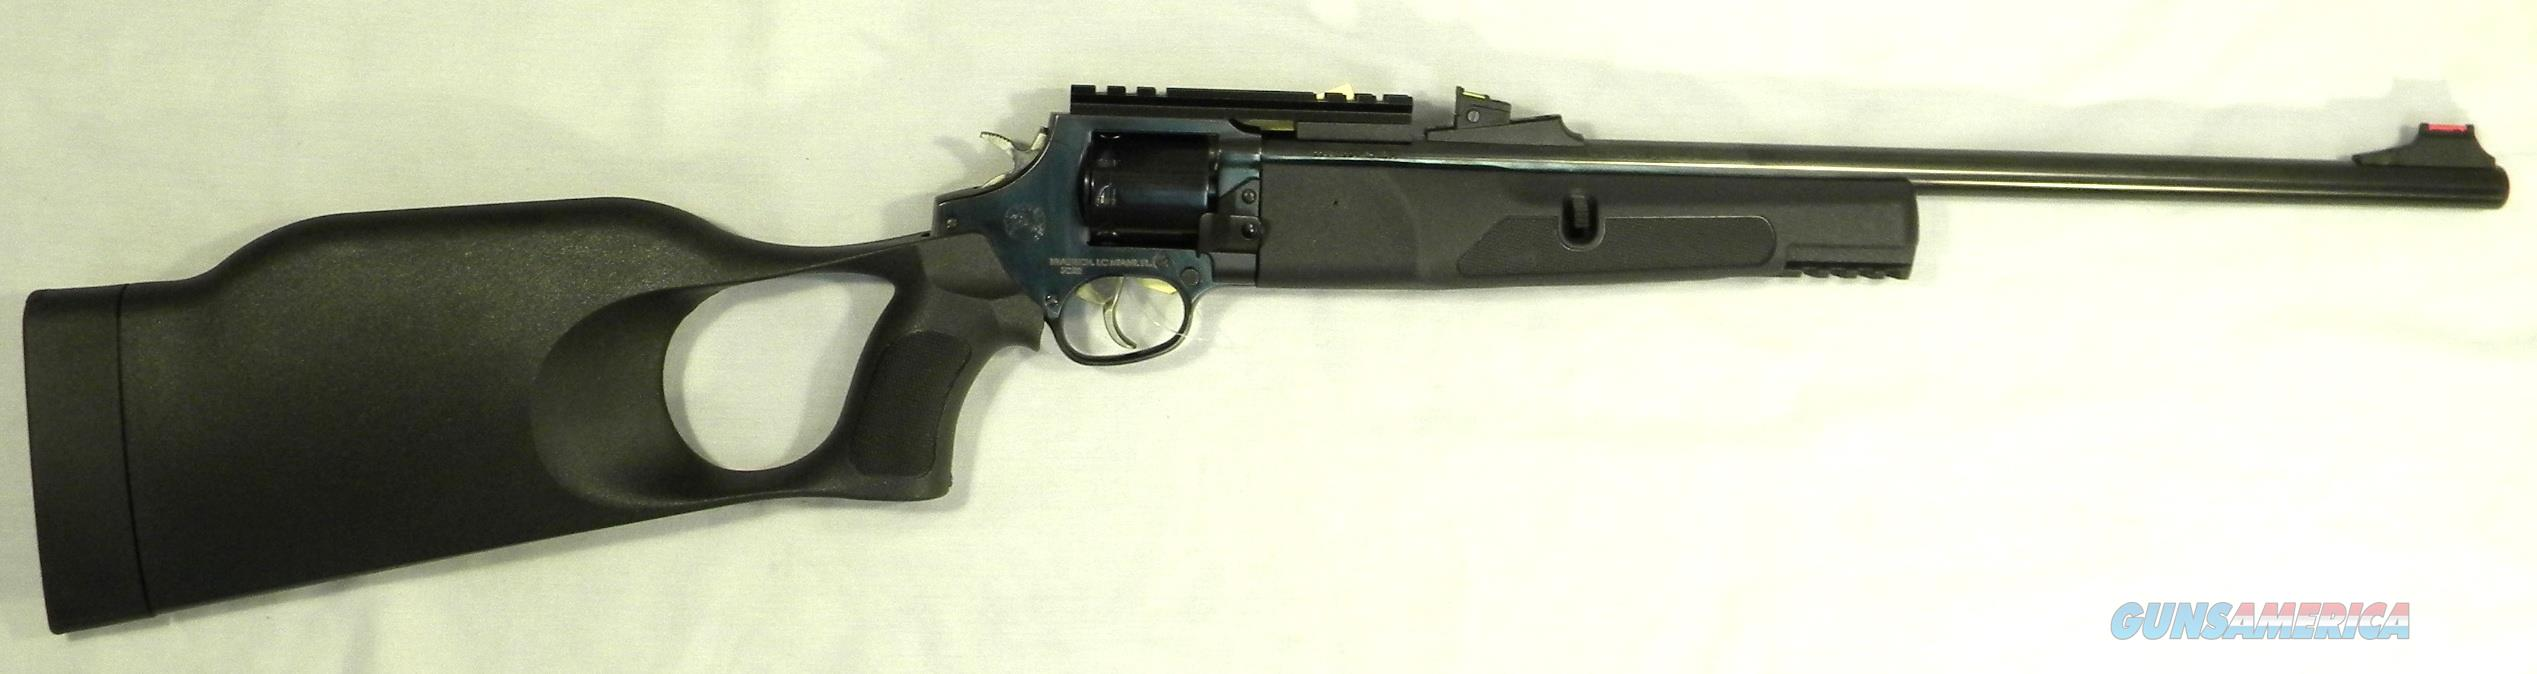 """Rossi """"Circuit Judge"""" In .22 LR & .22 Mag, Rare And No Longer Imported!  Guns > Rifles > Rossi Rifles > Other"""